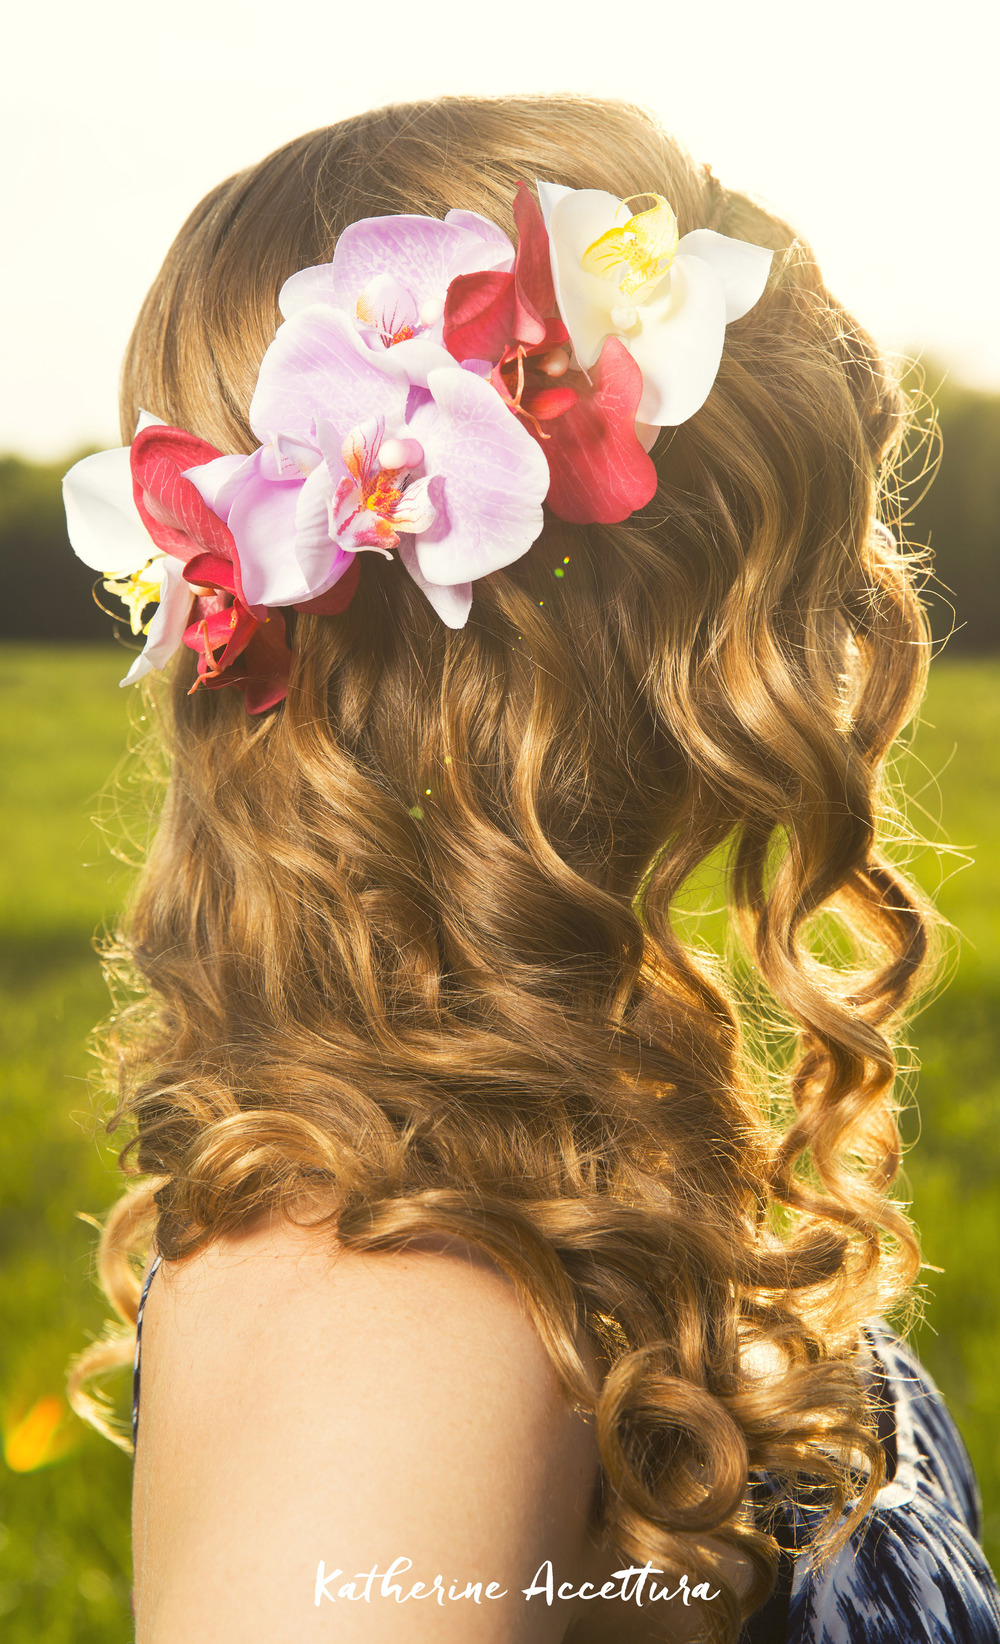 Curly Hair and An Orchid Flower Crown